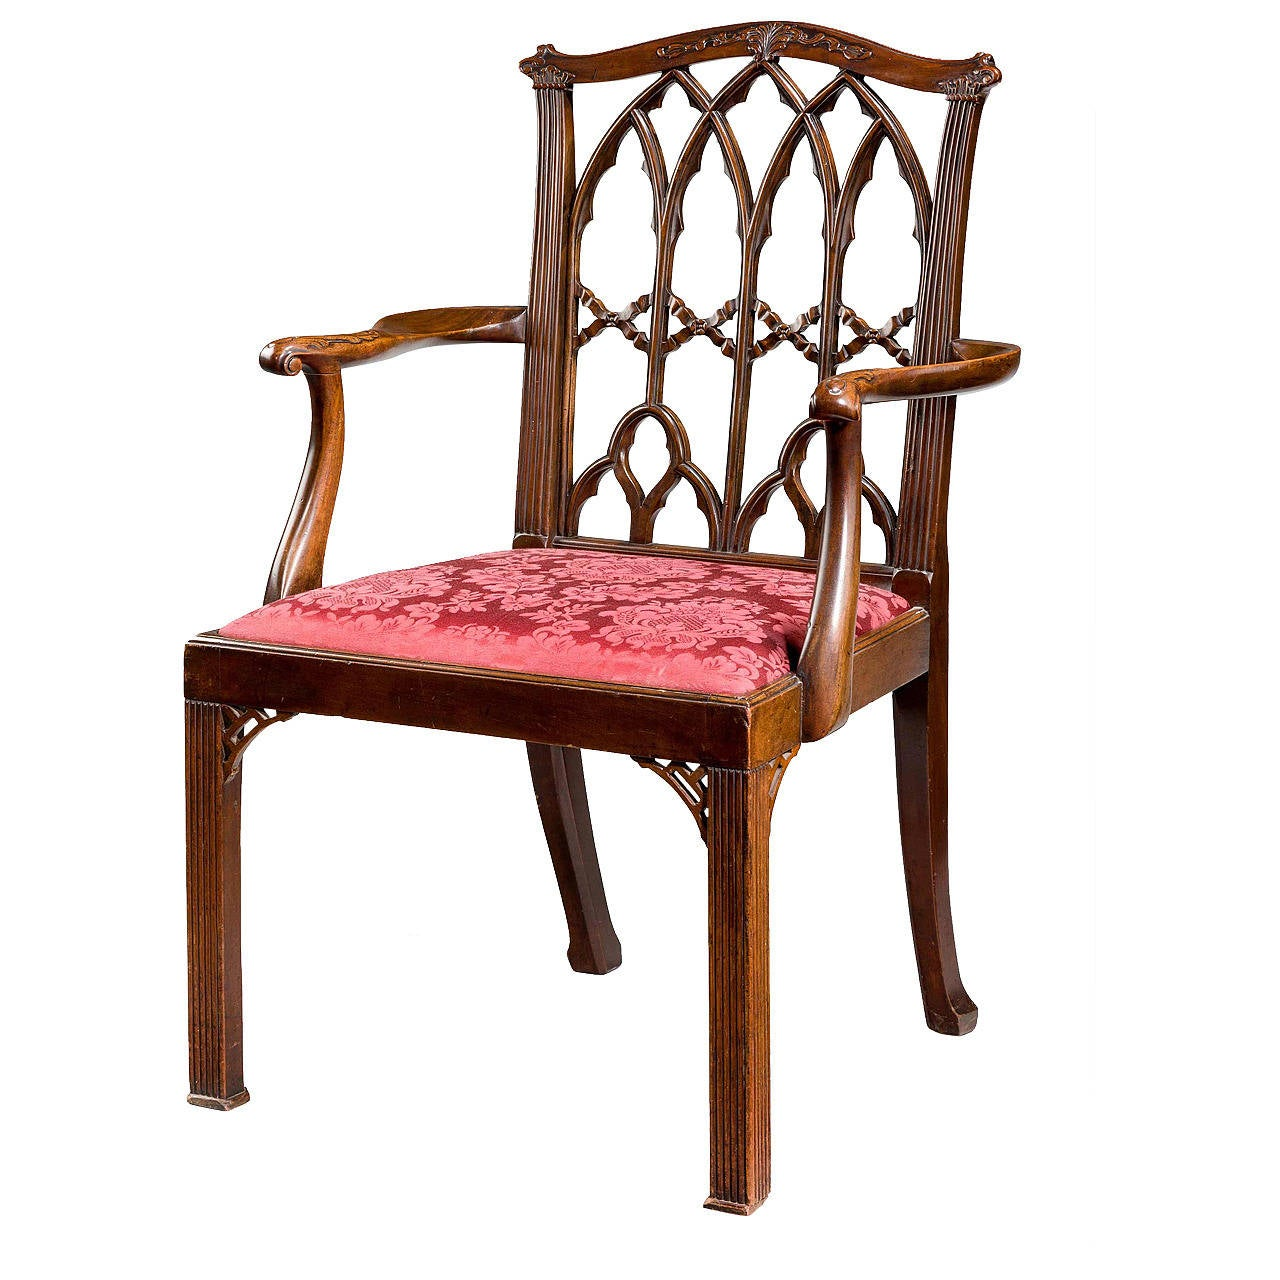 Chippendale Design Armchair with Fine Gothic Details